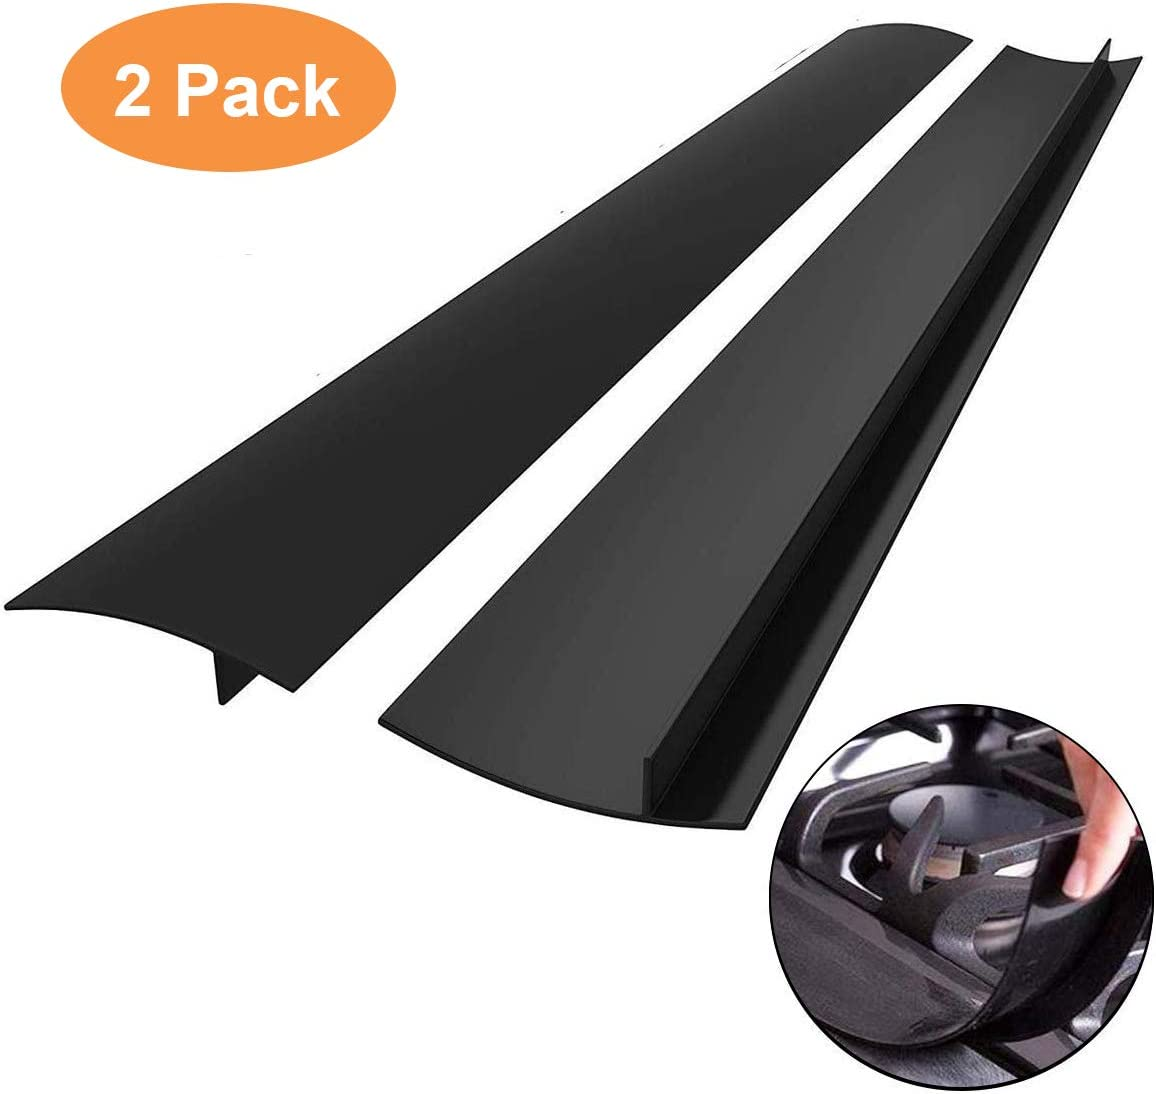 Kitchen Silicone Stove Counter Gap Cover with Heat Resistant Wide & Long Gap Filler Used for Protect Gap Filler Sealing Spills in Kitchen Counter, Stovetops(2 Pack, Black,21 Inch)